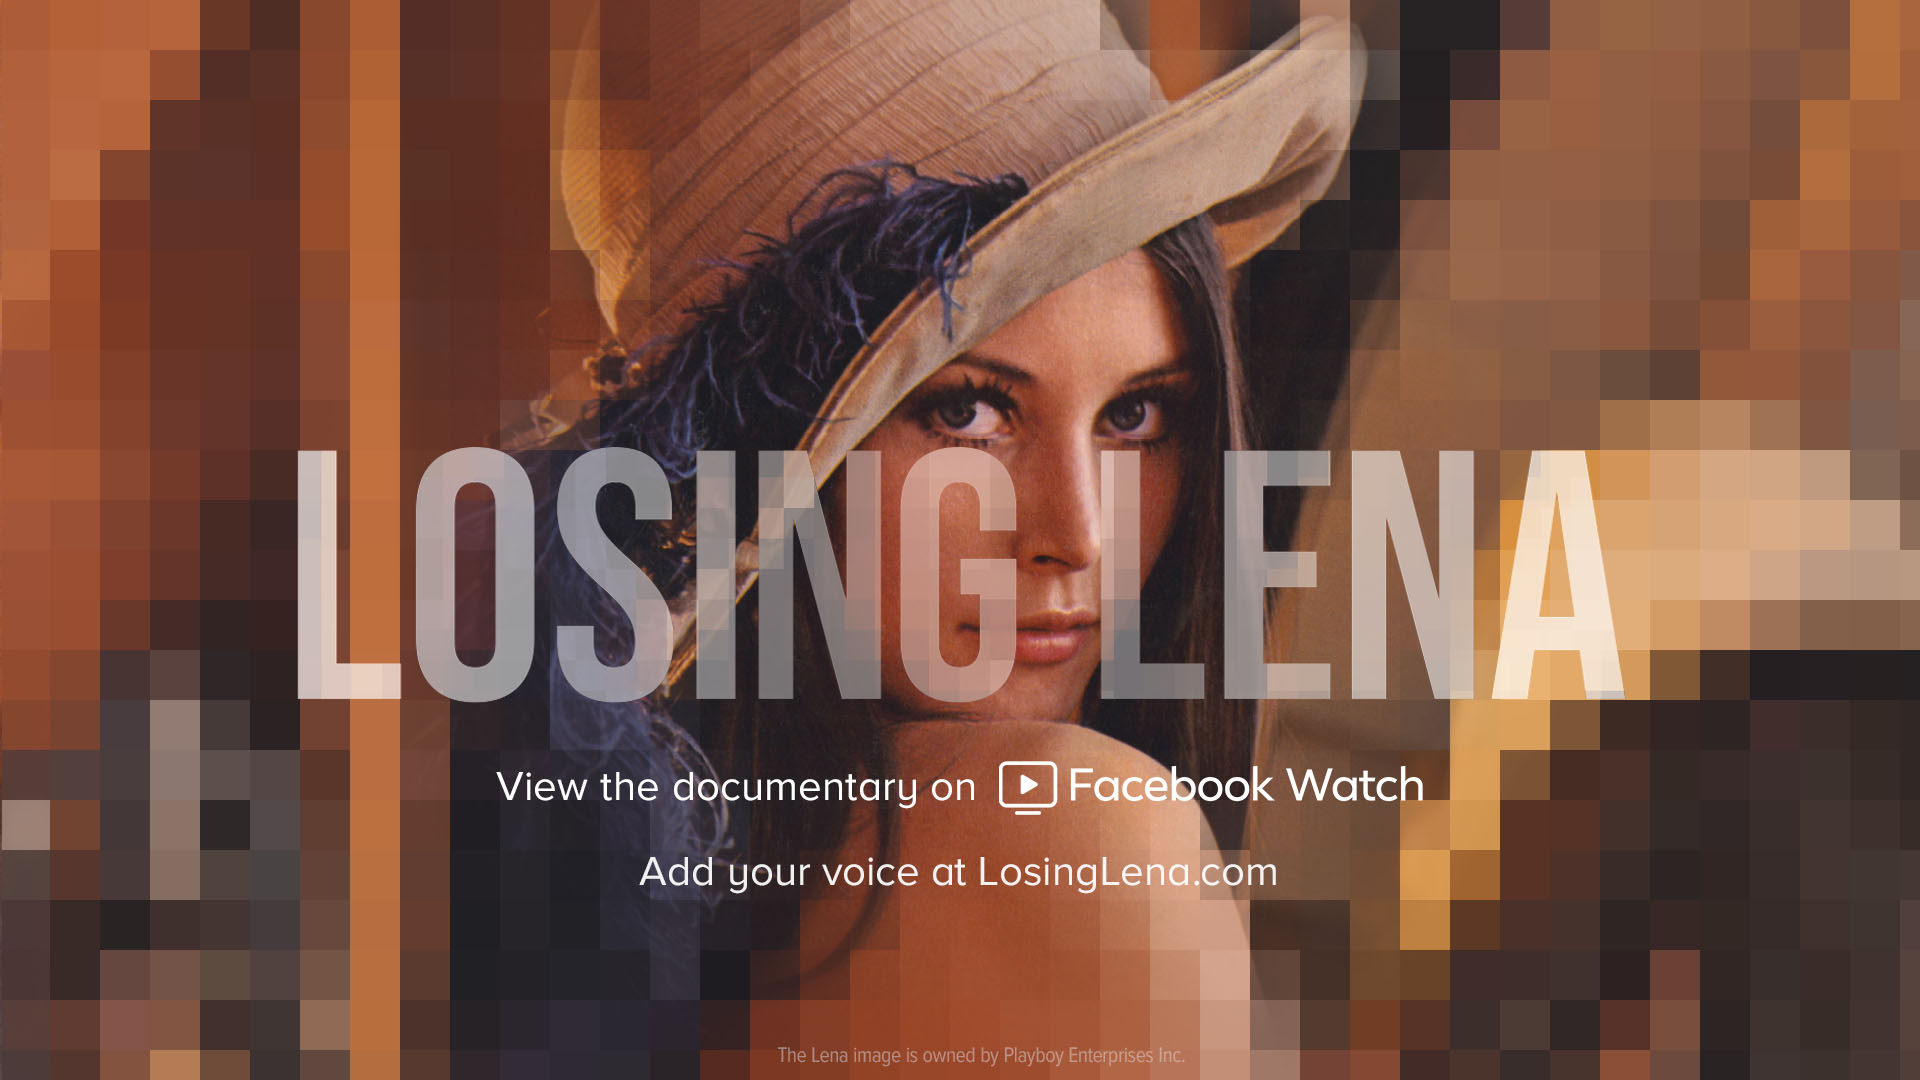 Creatable and Code Like a Girl's 'Losing Lena' doco via Clemenger + Finch debuts on Facebook Watch